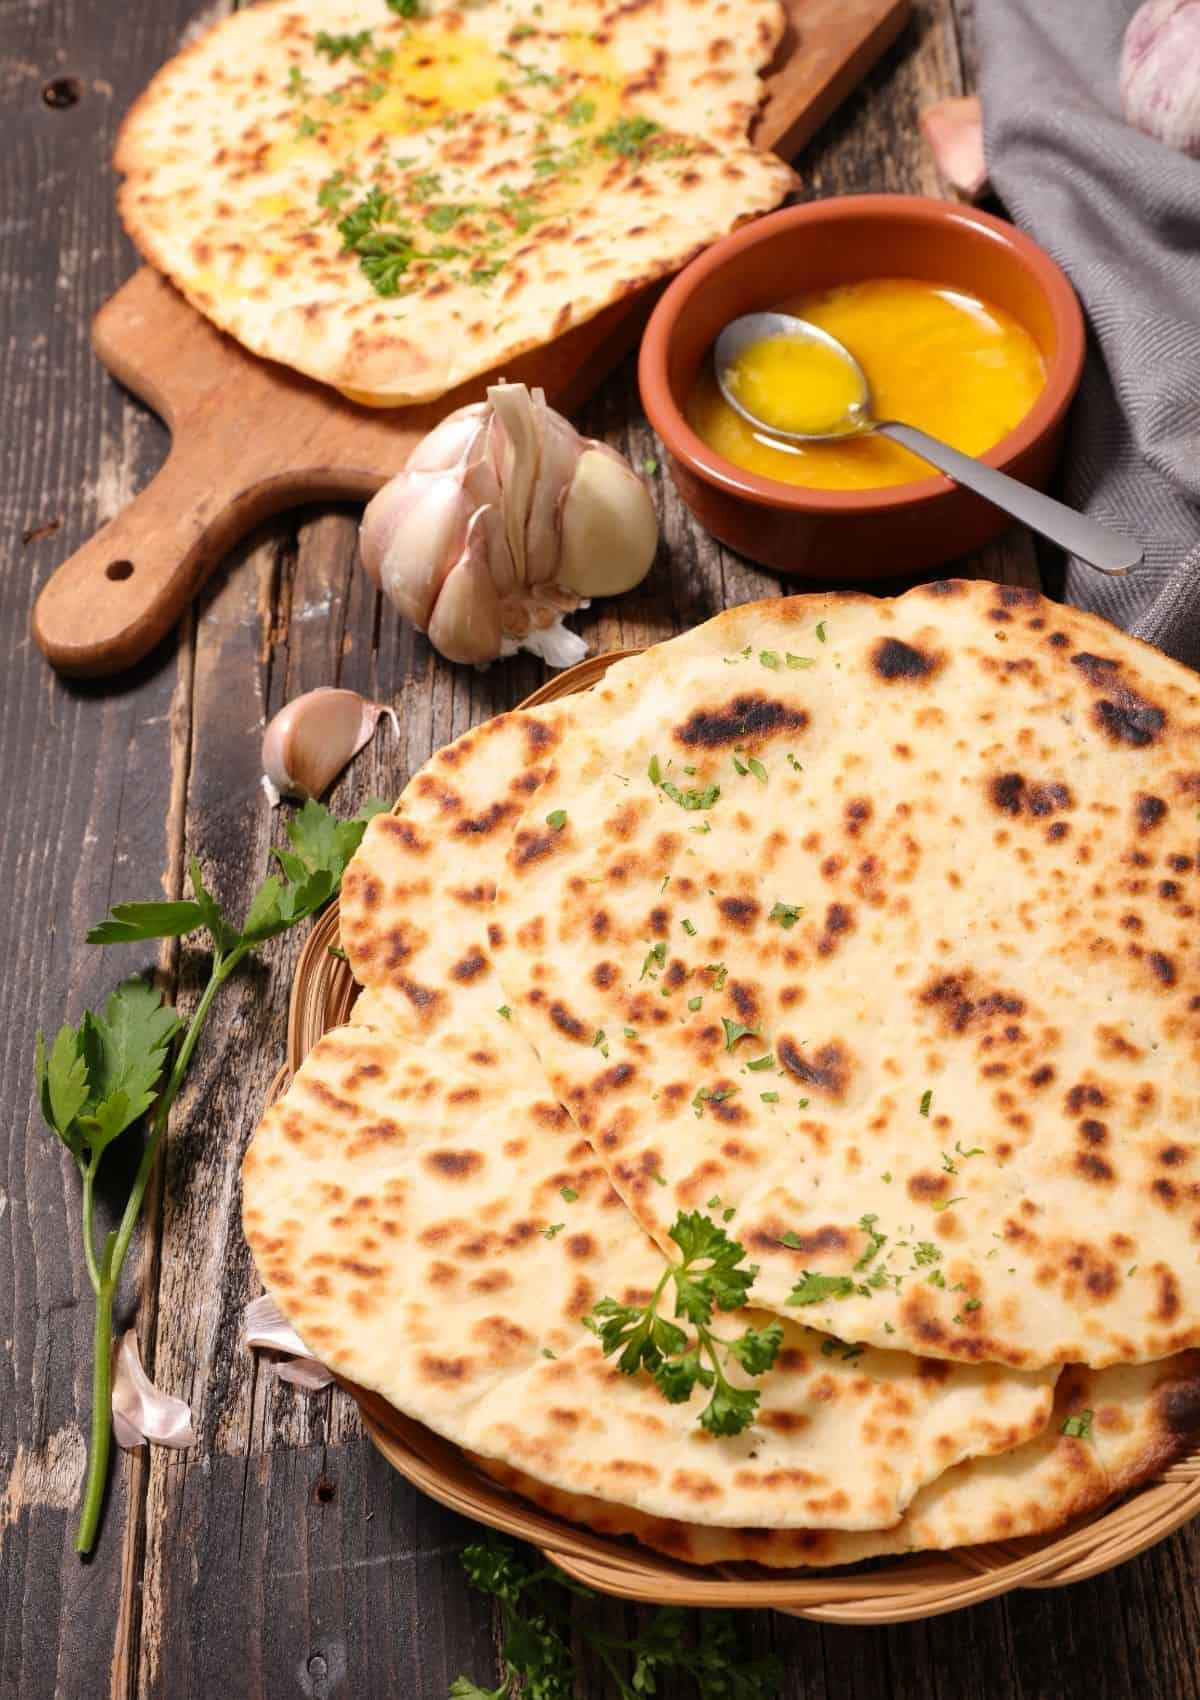 Naan bread stacked on flat basket.